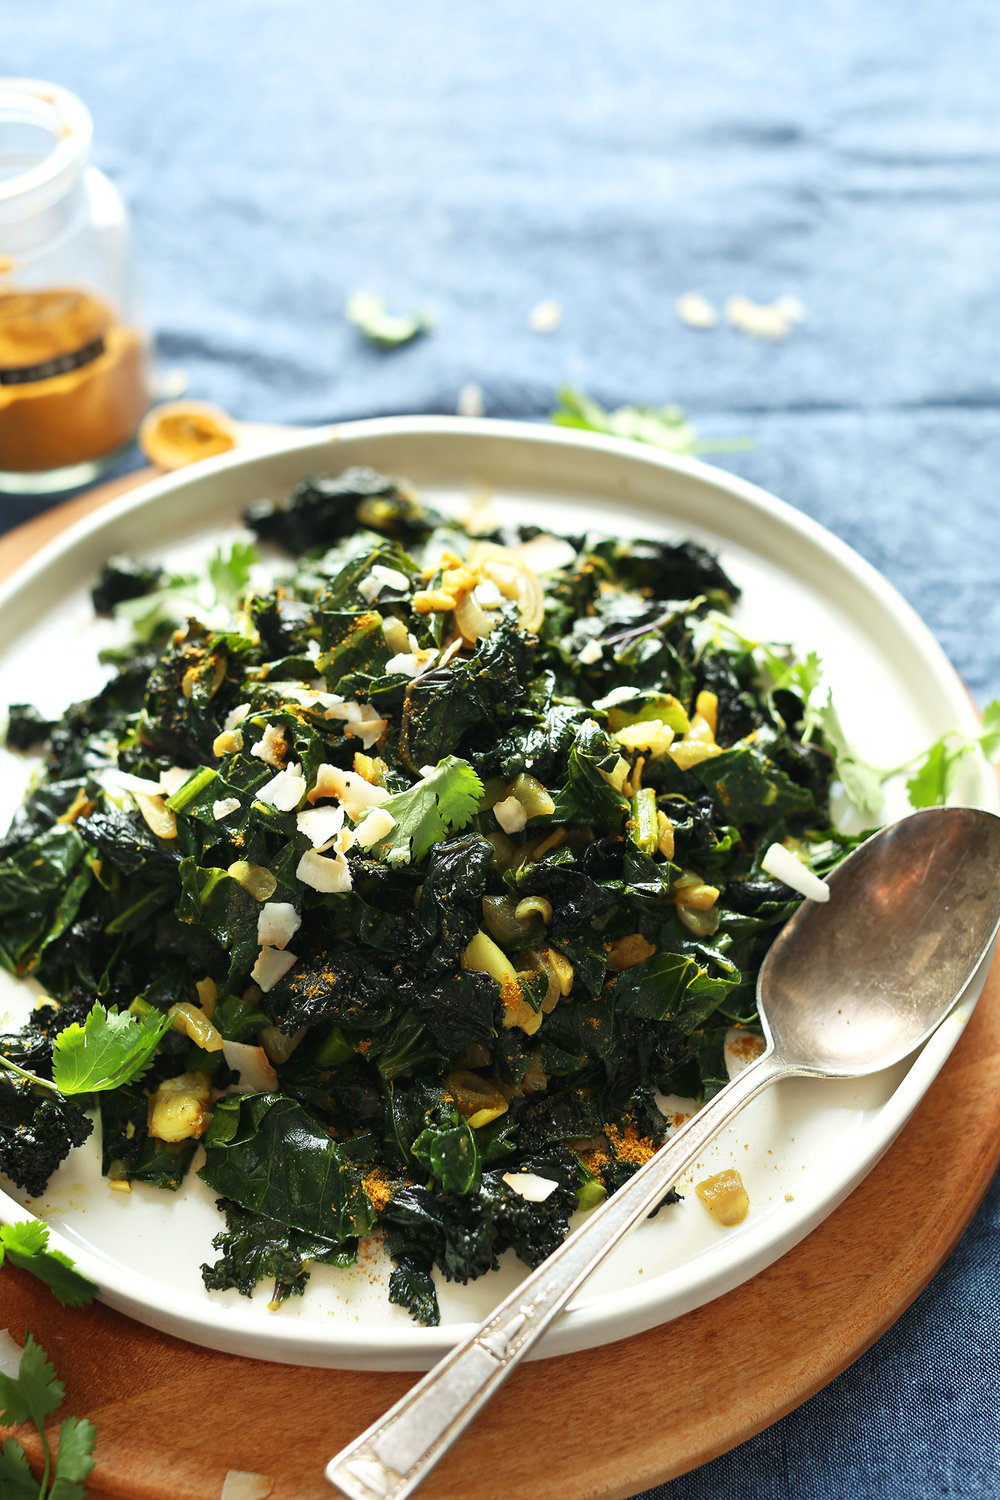 AMAZING-Coconut-Curried-Greens-Collars-Kale-with-curry-powder-and-coconut-milk.-SO-healthy-tasty-vegan-glutenfree-curry-collardgreens-recipe.jpg